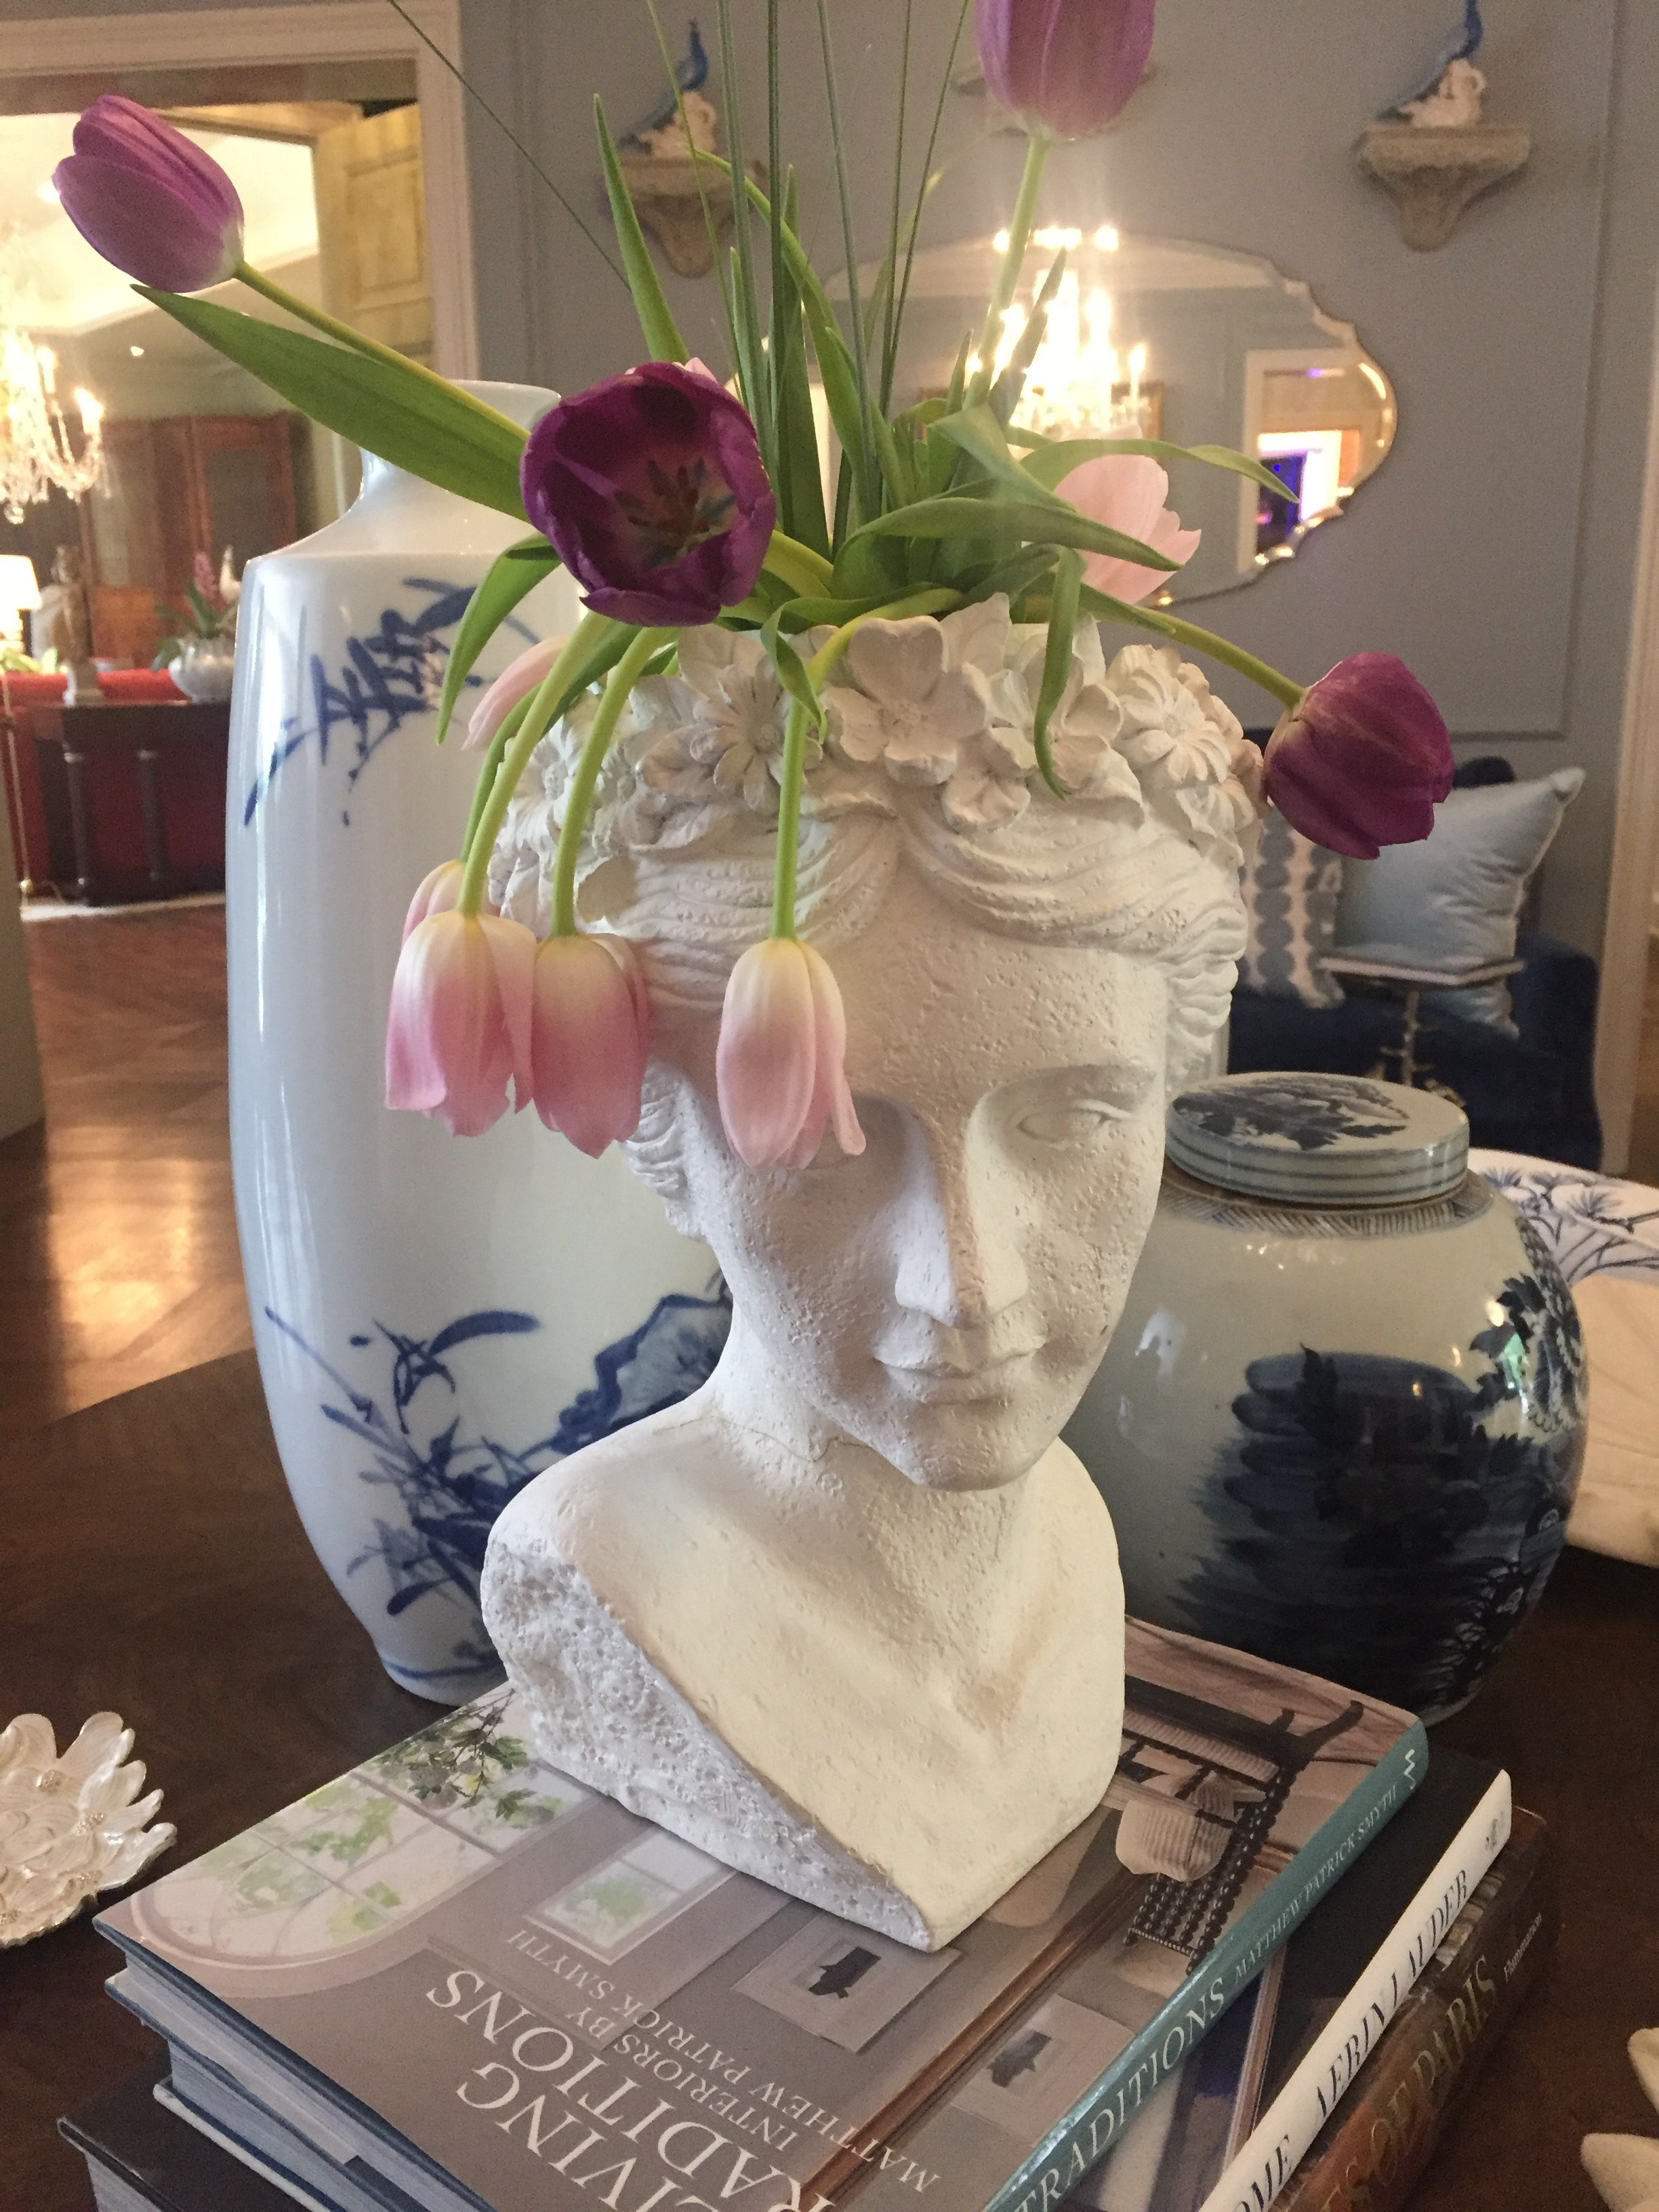 A plaster cast bust doubles as a planter displaying fresh cut tulips.